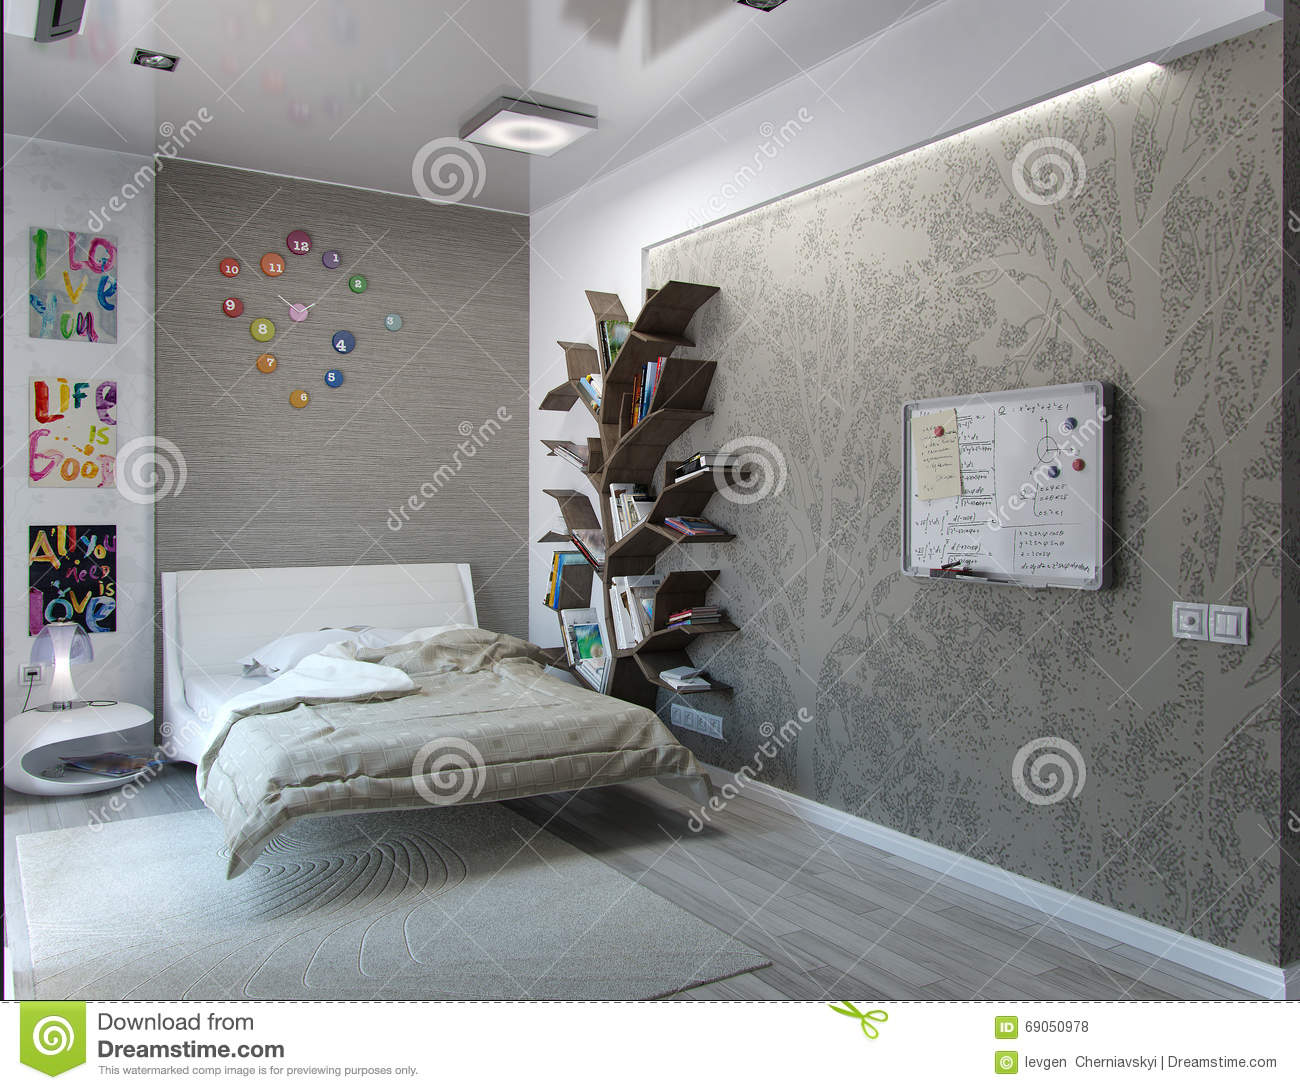 Bedroom Rendering Bedroom Ceiling Uplighters Childrens Bedroom Wallpaper Bedroom Black White: Visualization Of The Interior. 3D Rendering Royalty-Free Stock Photography